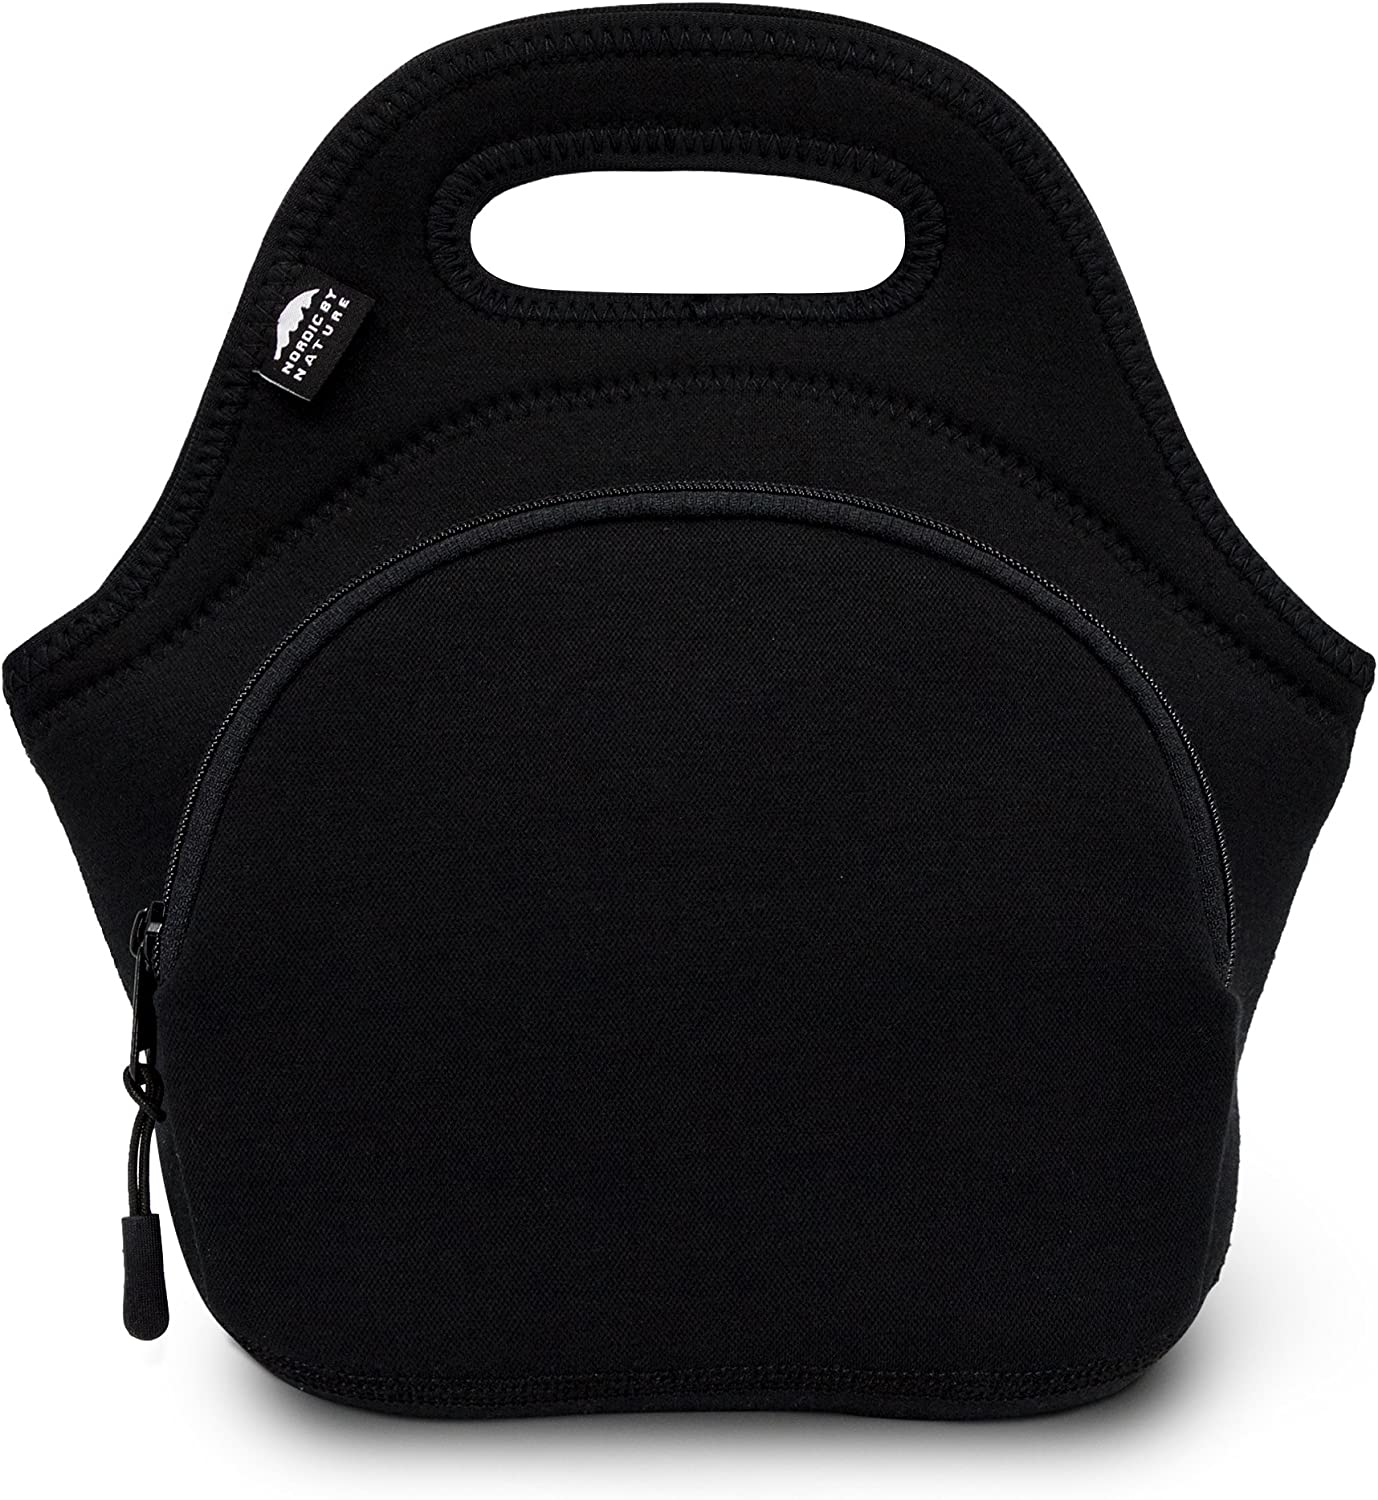 Nordic By Nature Lunch Bags for Women & Lunch Boxes for Kids Premium Insulated Lunch Box Extra Thick Neoprene, Soft Cotton Feel, Premium Stitching, Outside Pocket, Washable (M) Black